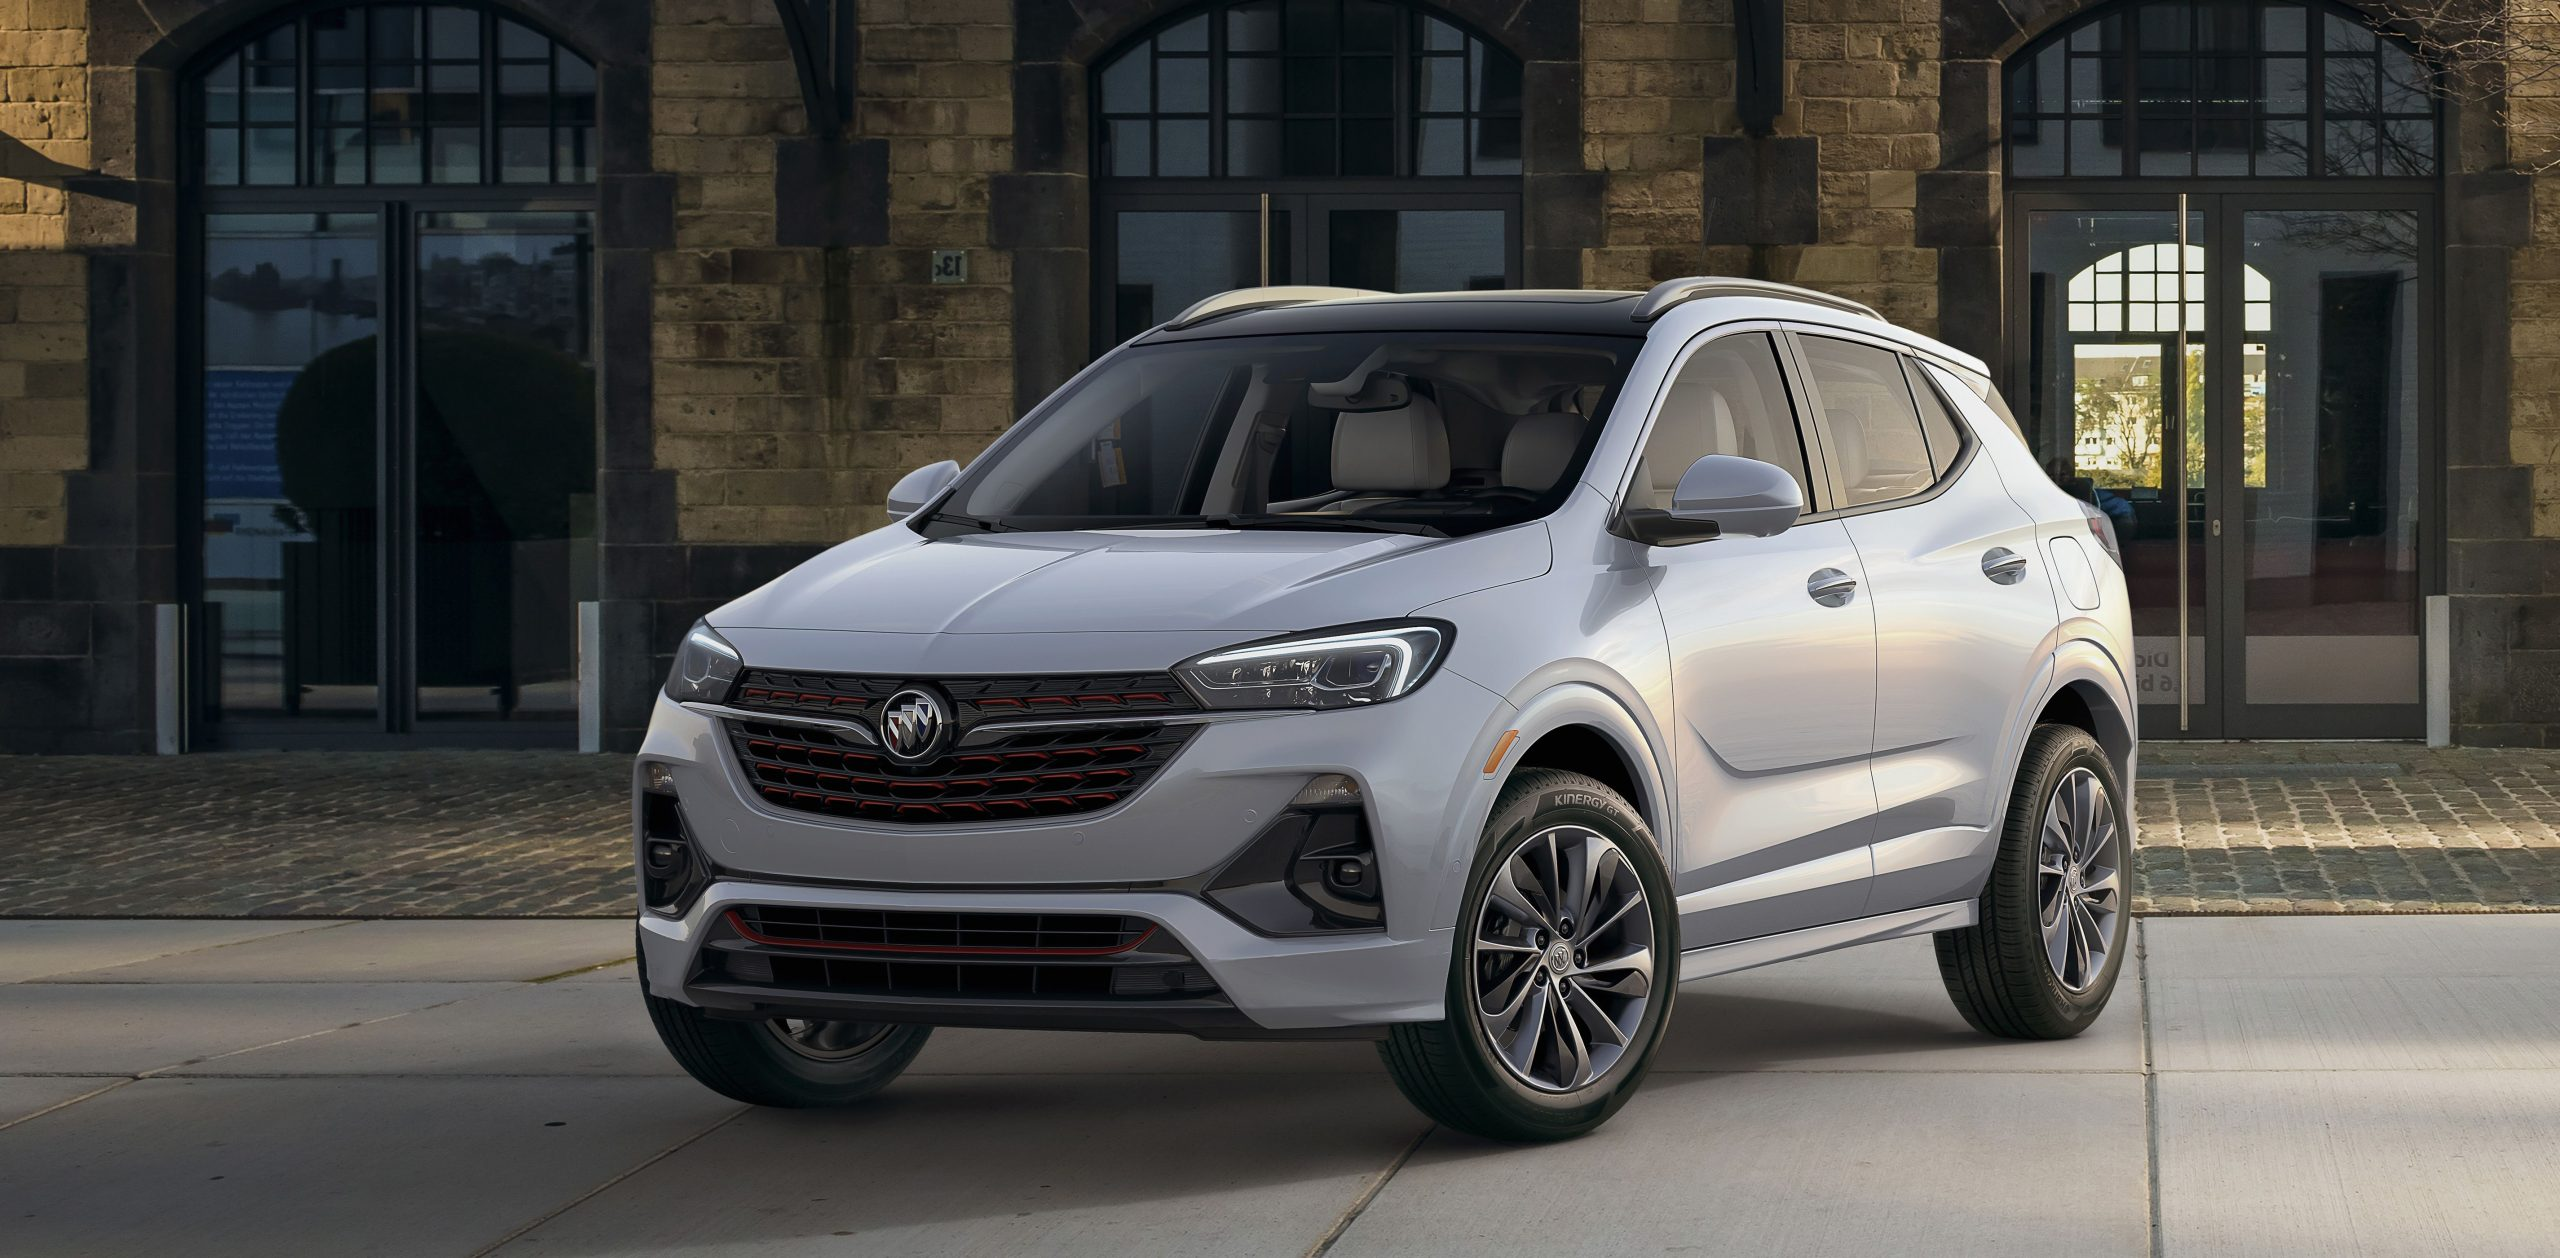 2020 Buick Encore Gx: What We Know So Far 2021 Buick Encore Gx Test Drive, Engine, Reviews